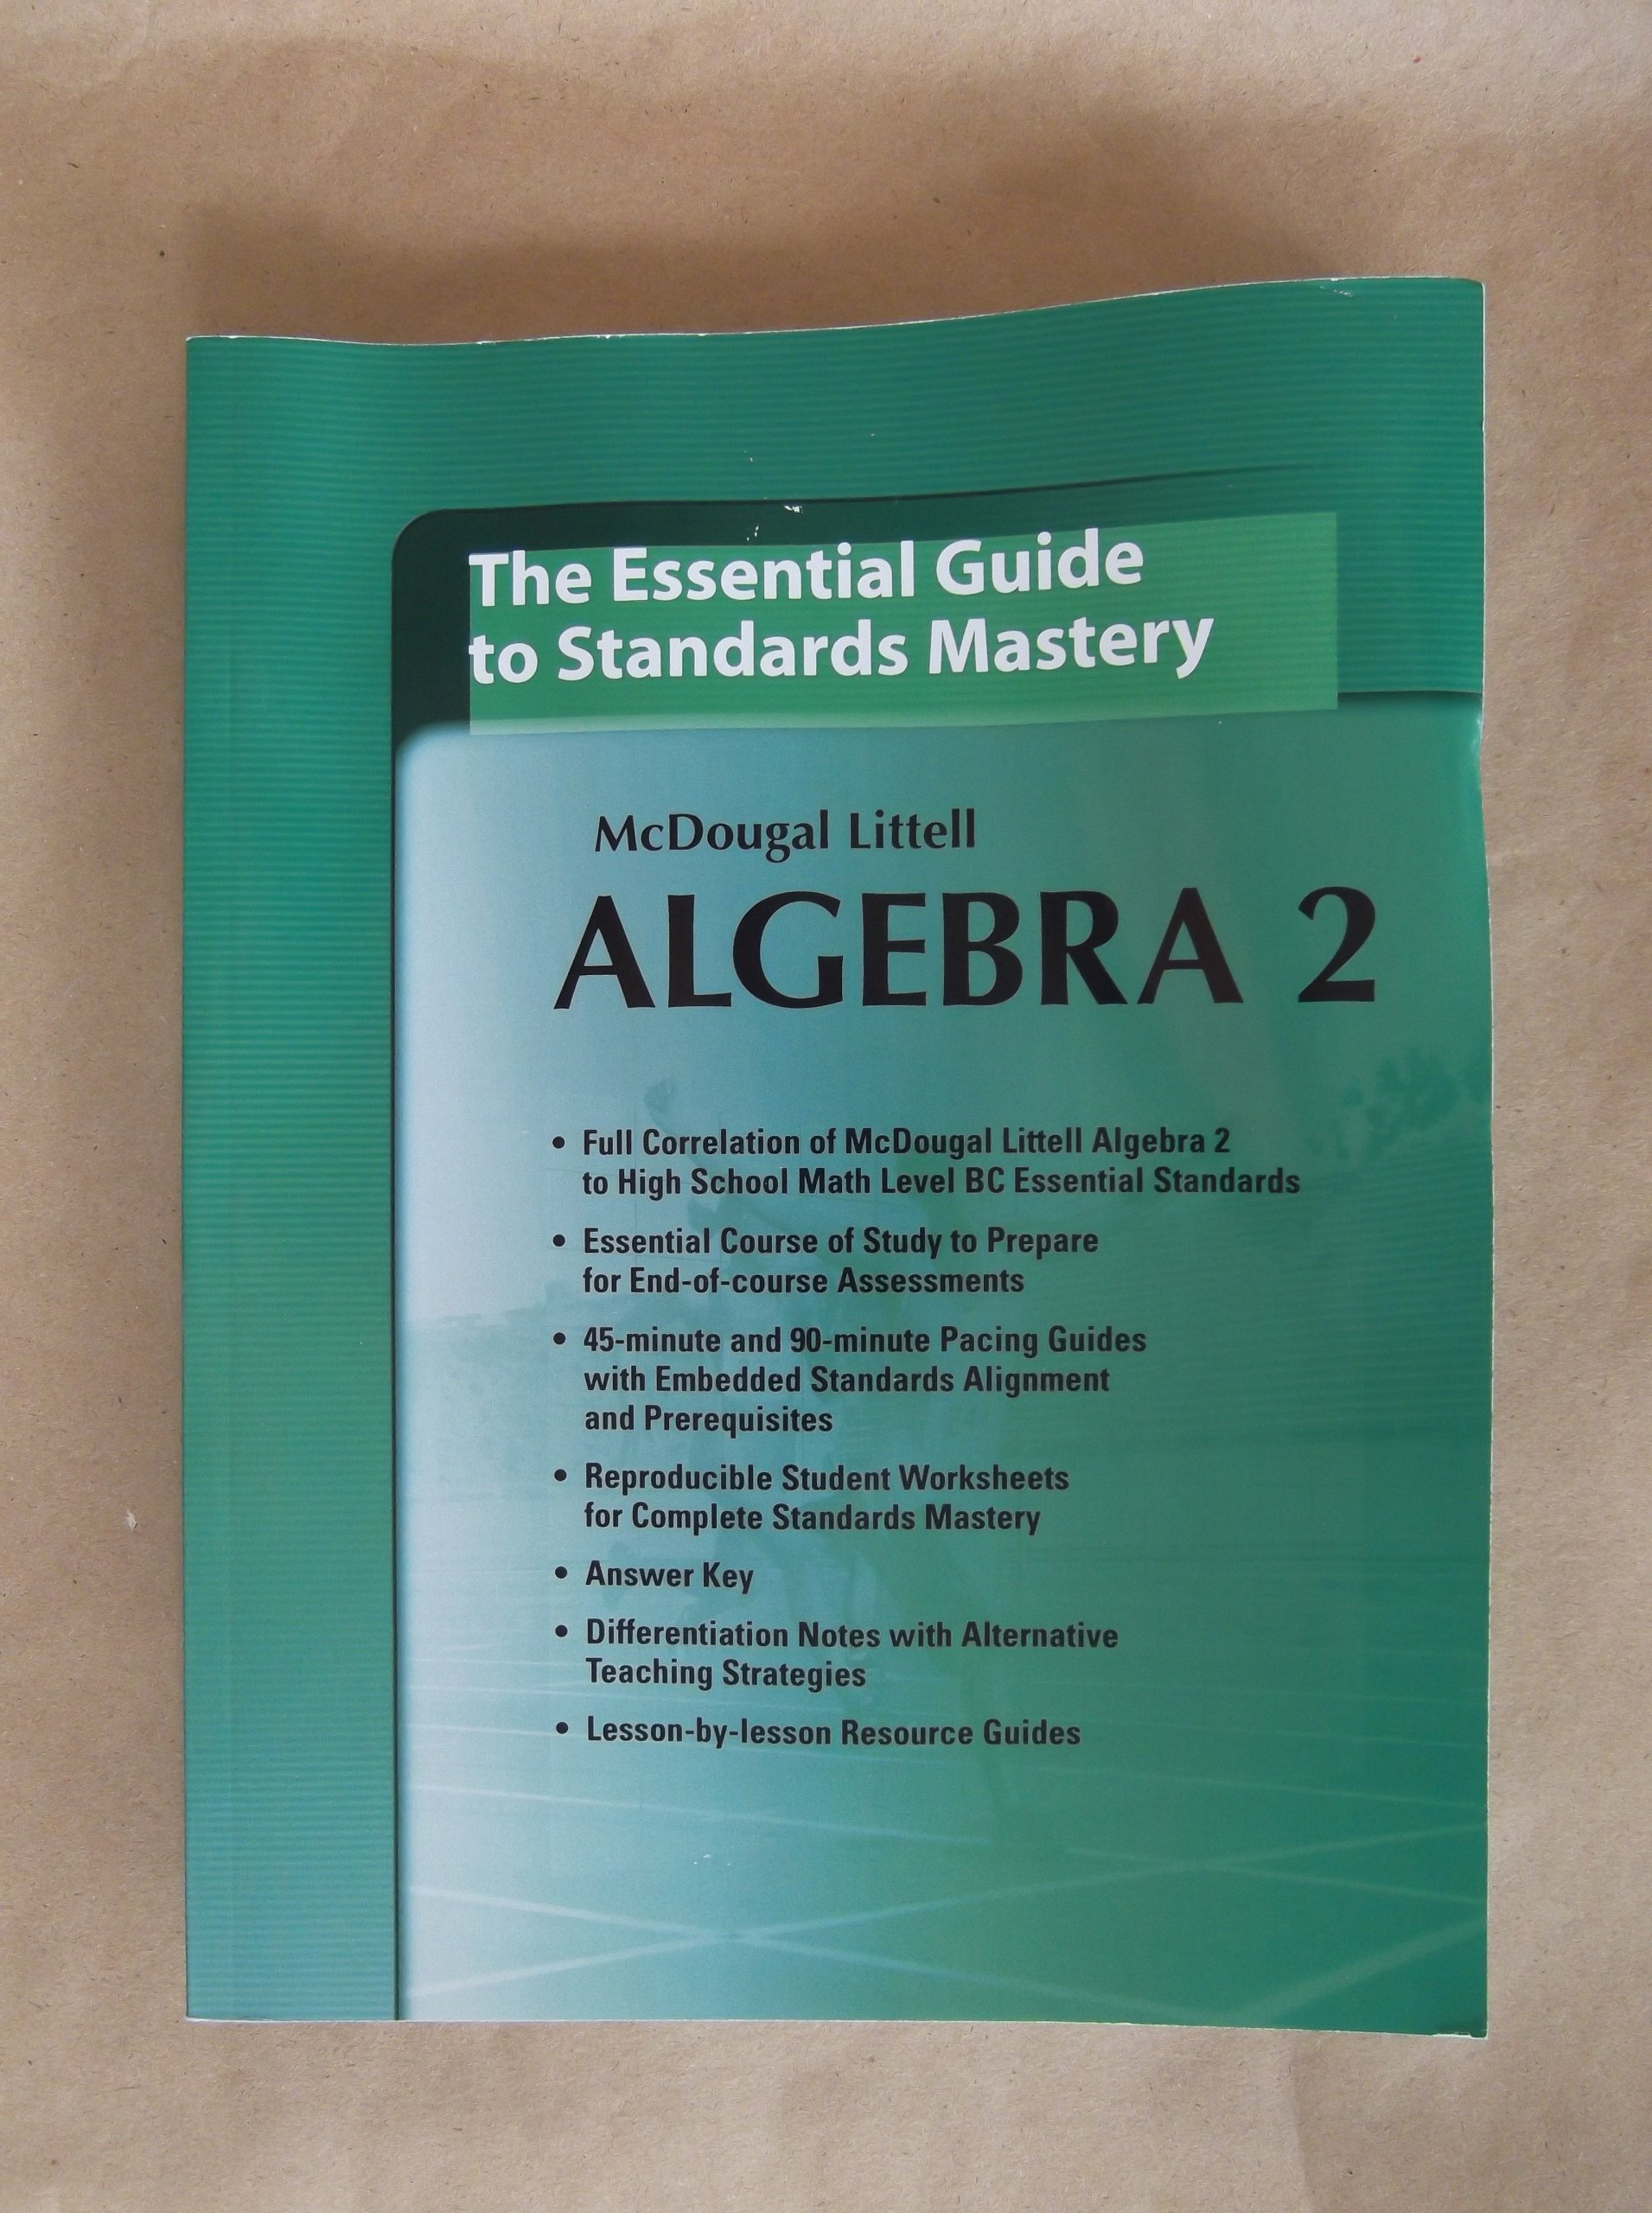 Mcdougal Littell Algebra 2 the Essential Guide to Standards Mastery ...